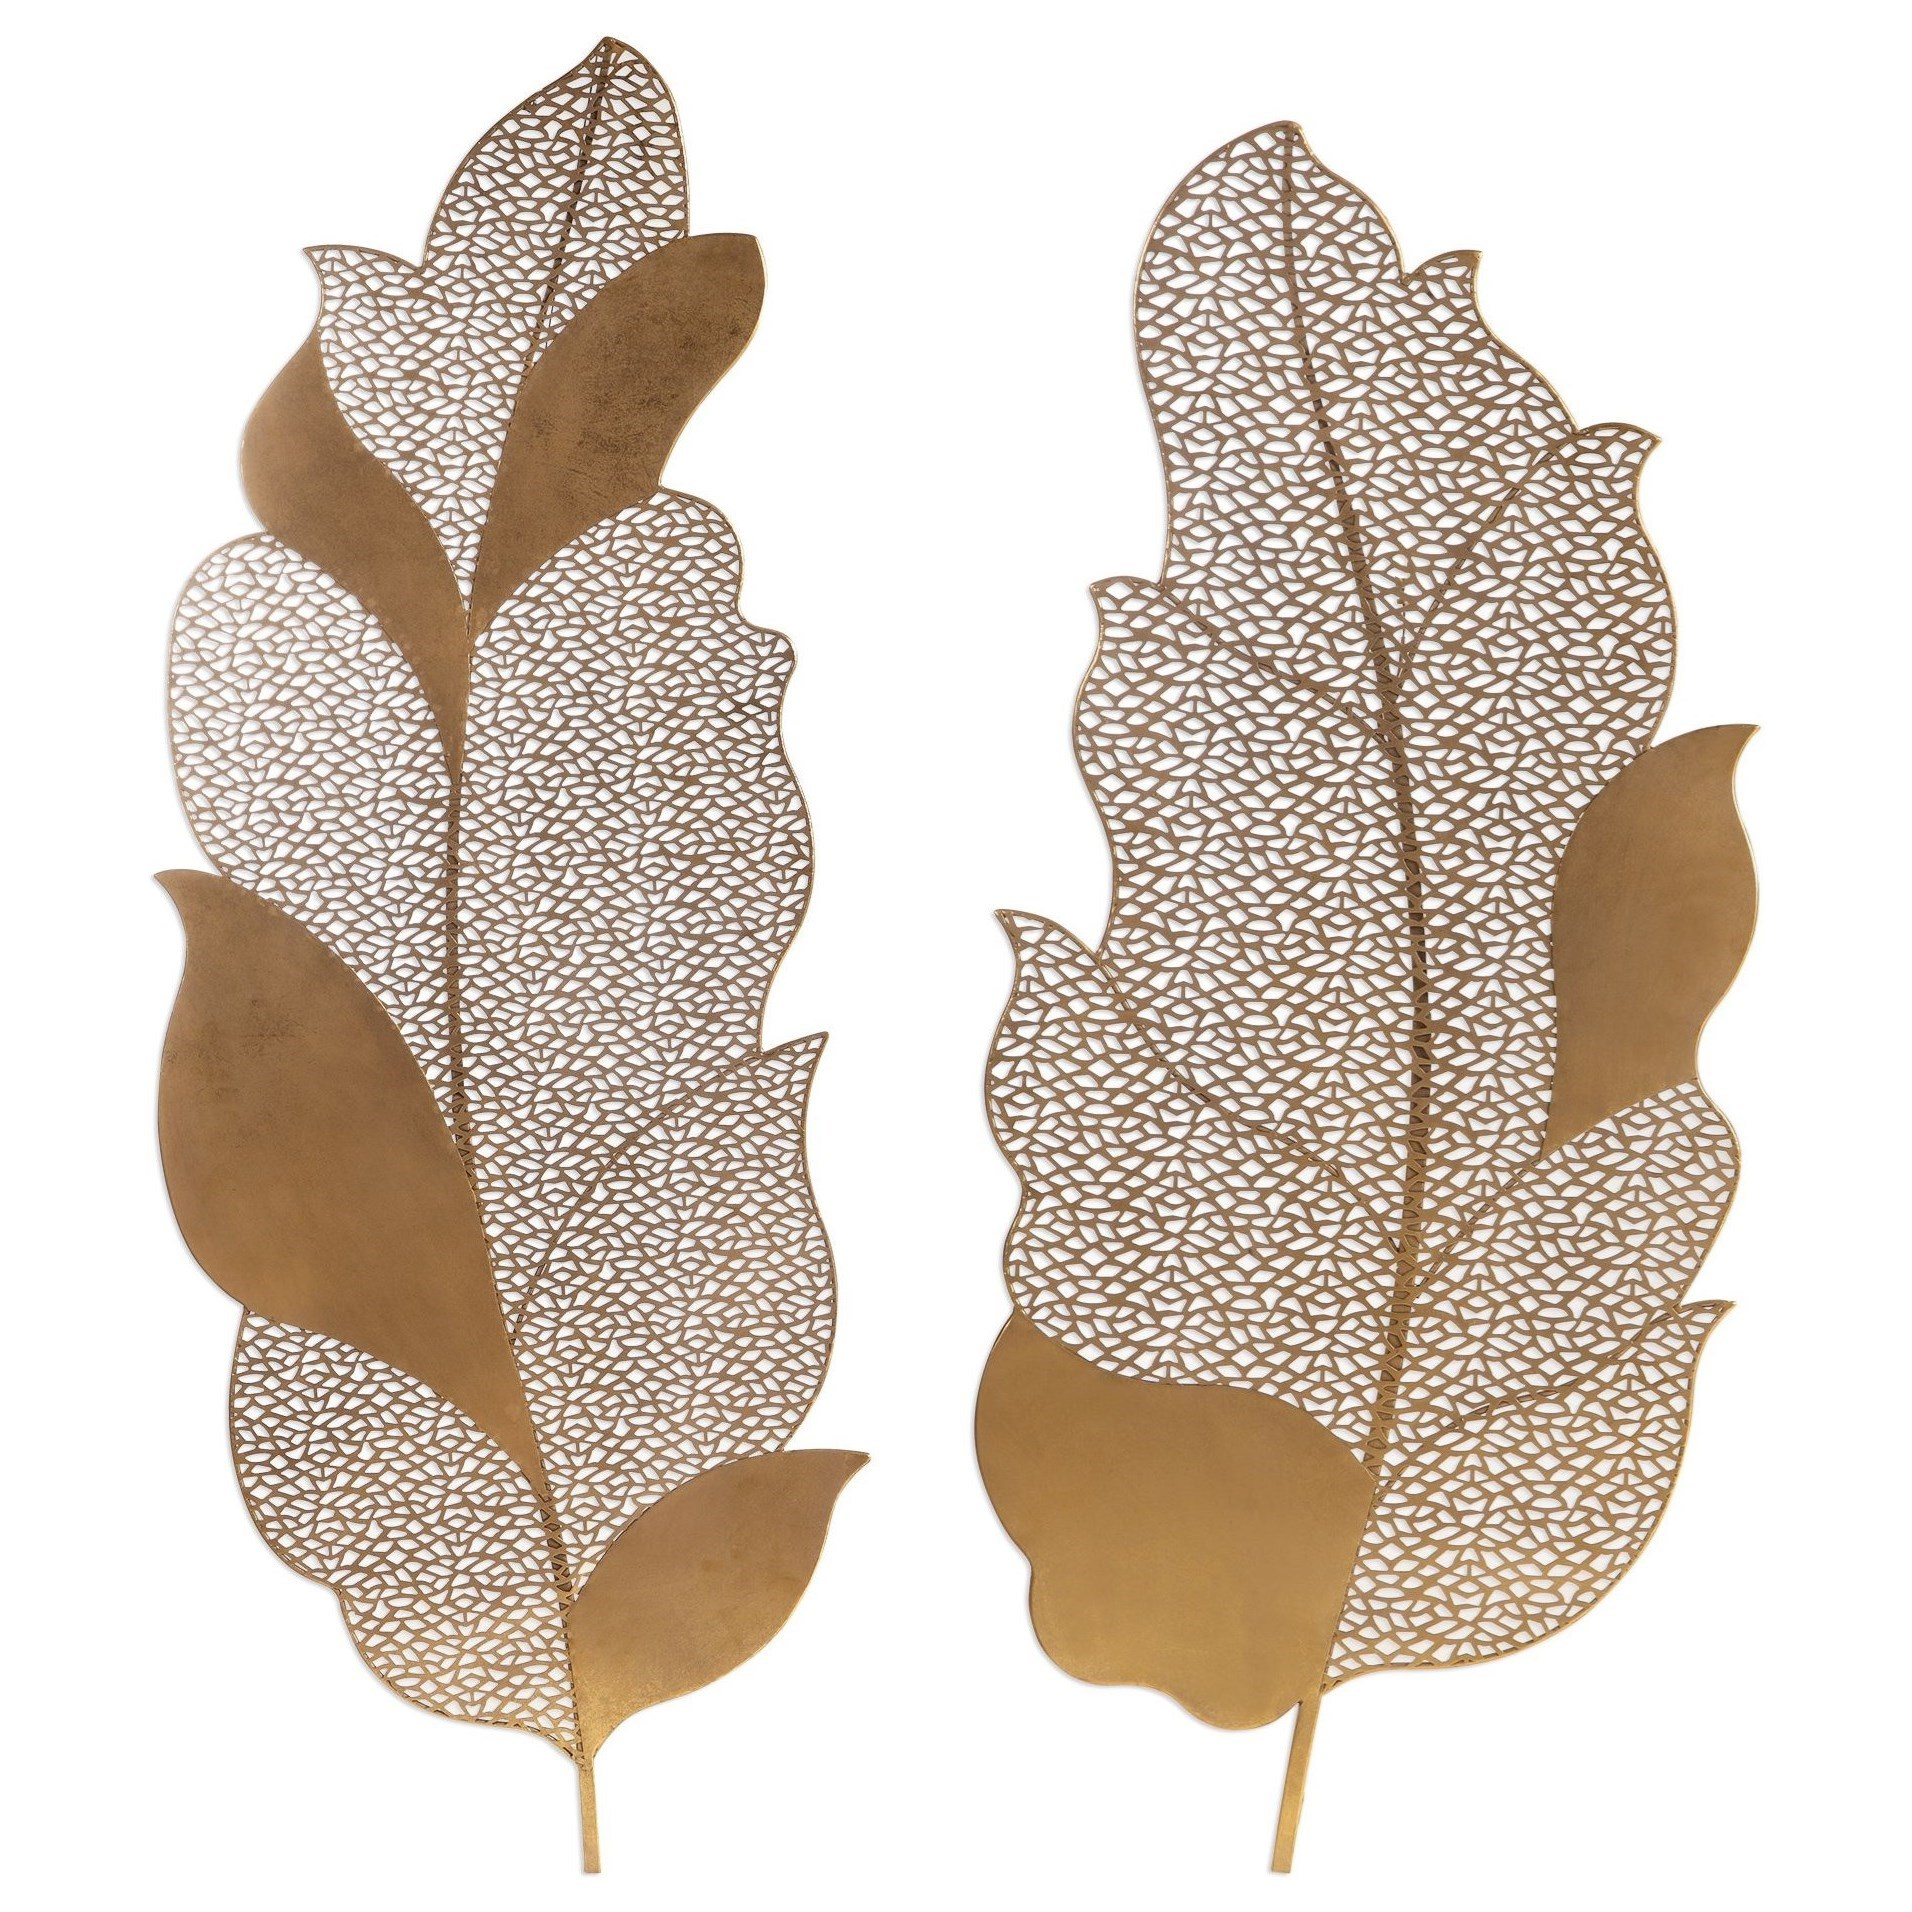 Autumn Lace Leaf Wall Art, S/2